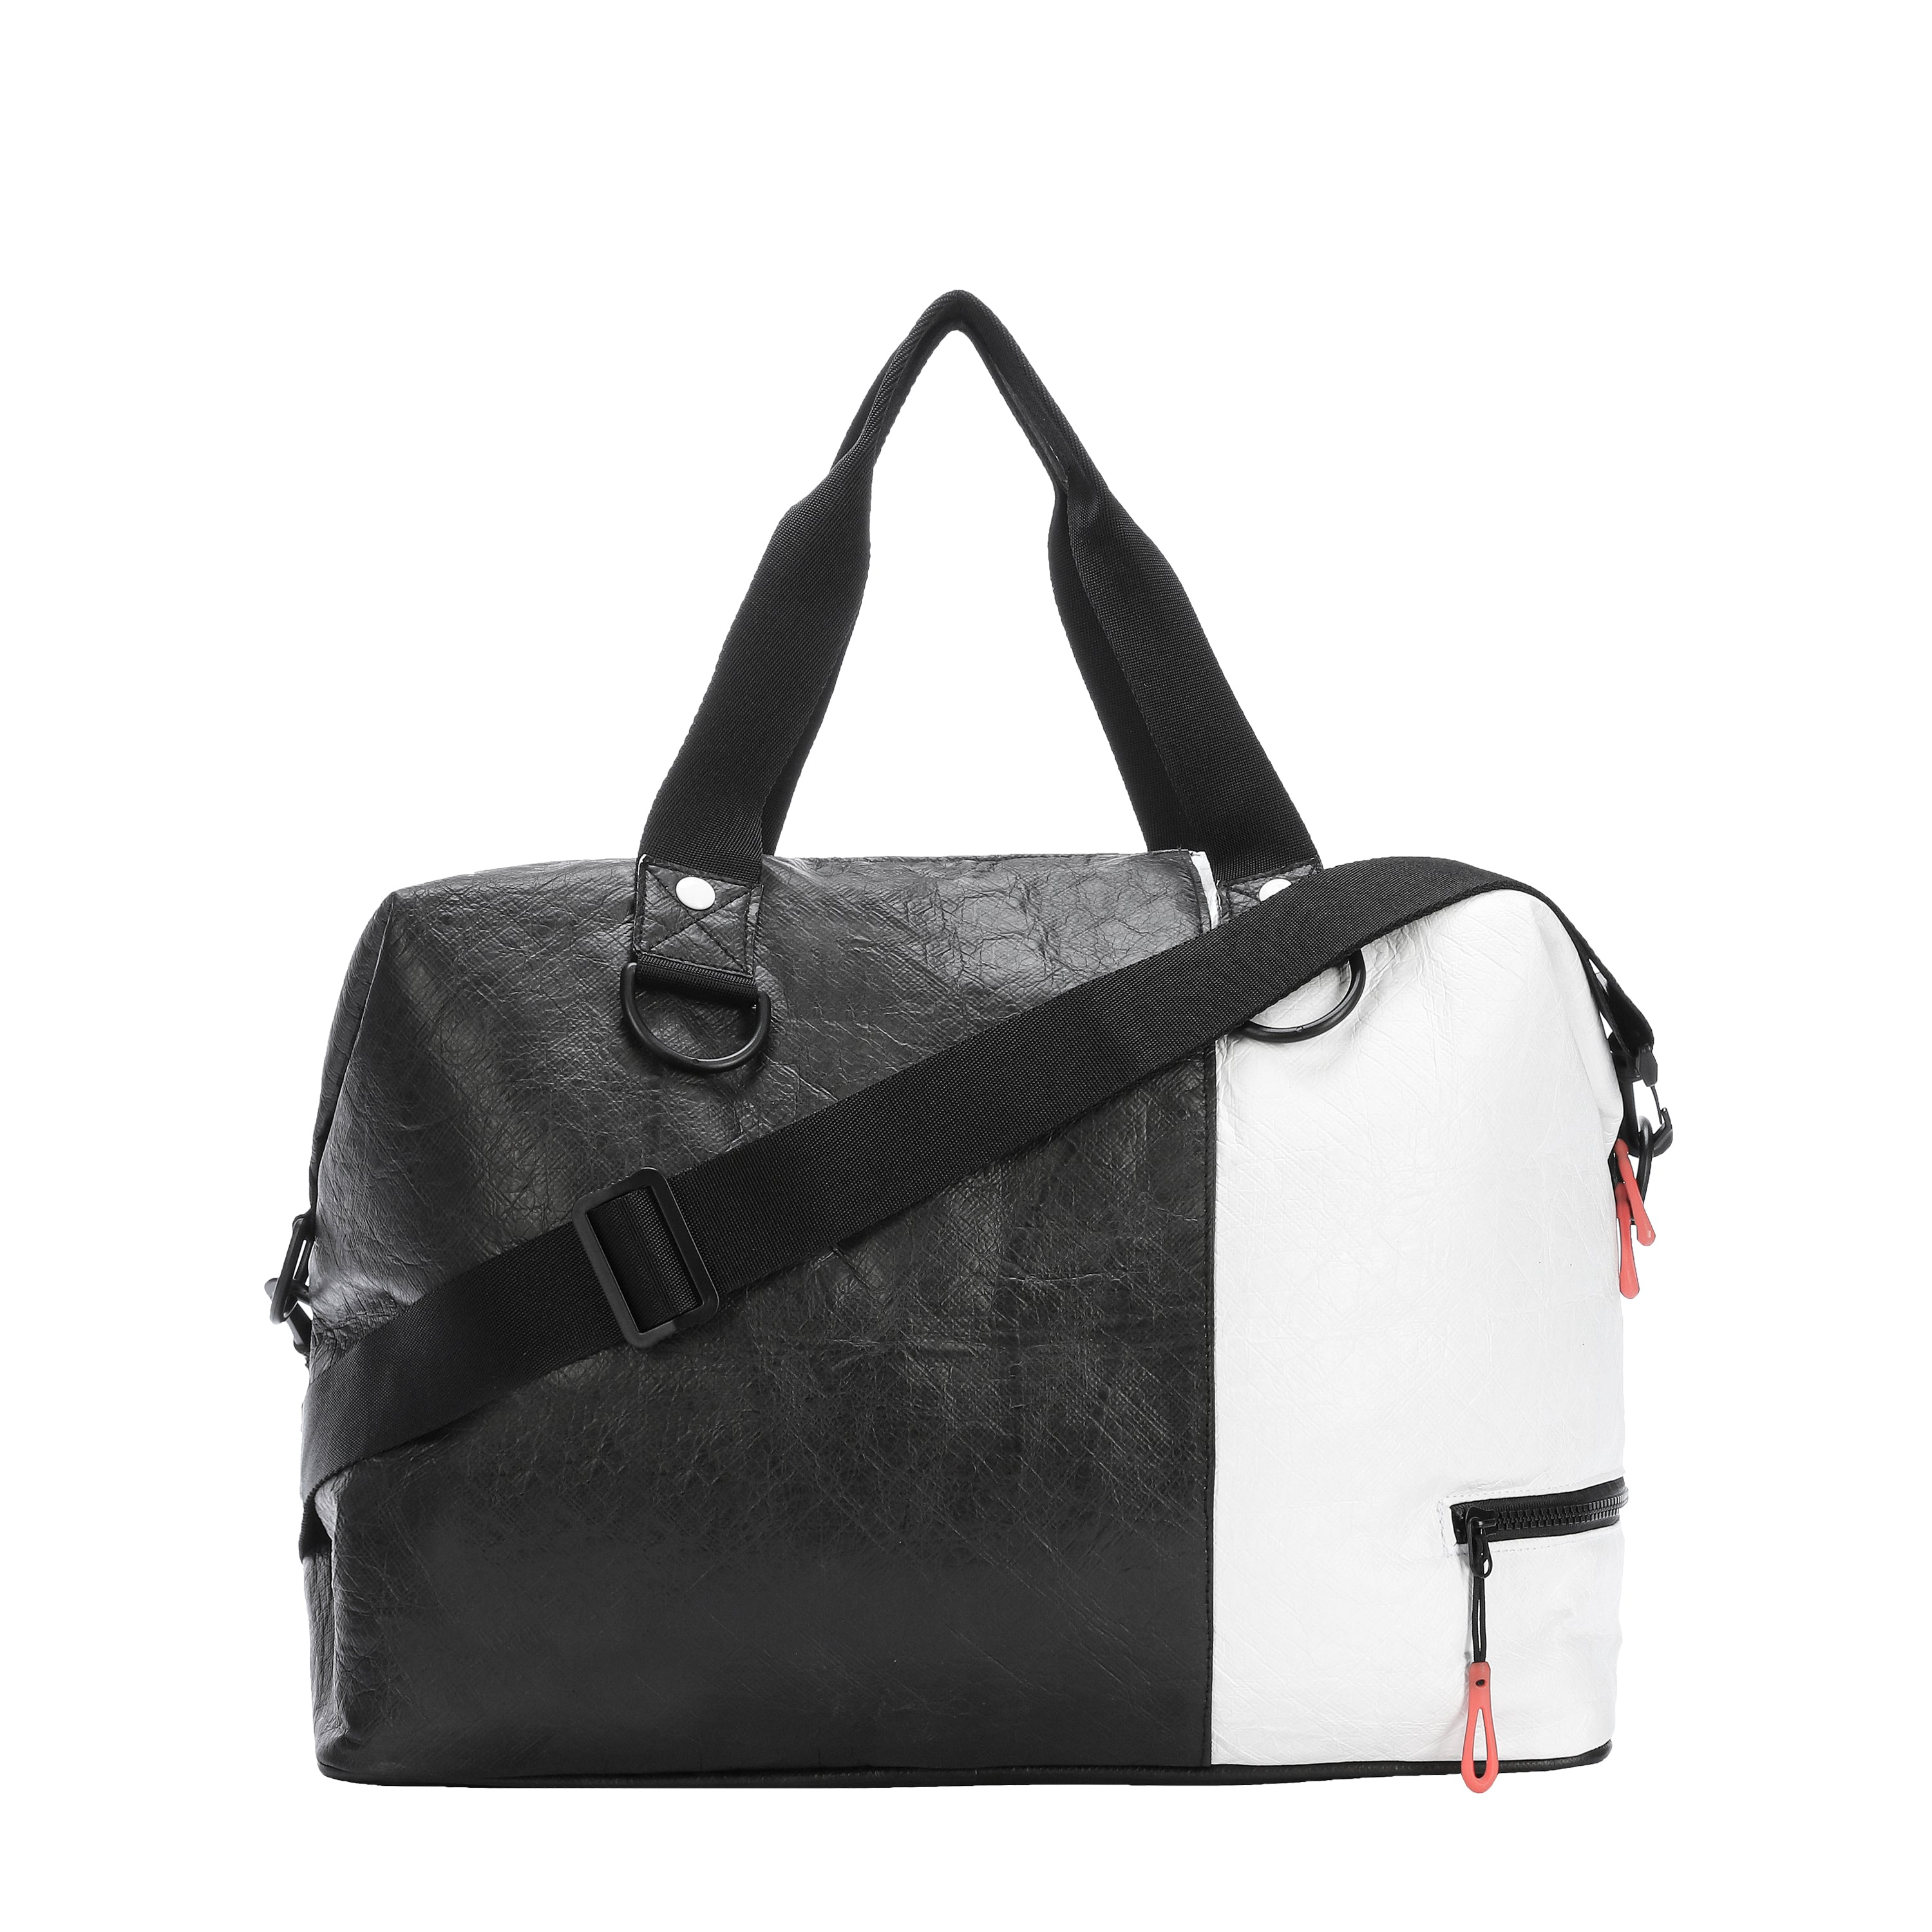 Black & White Duffle bag and Gym bag (back view) made with tyvek fabric